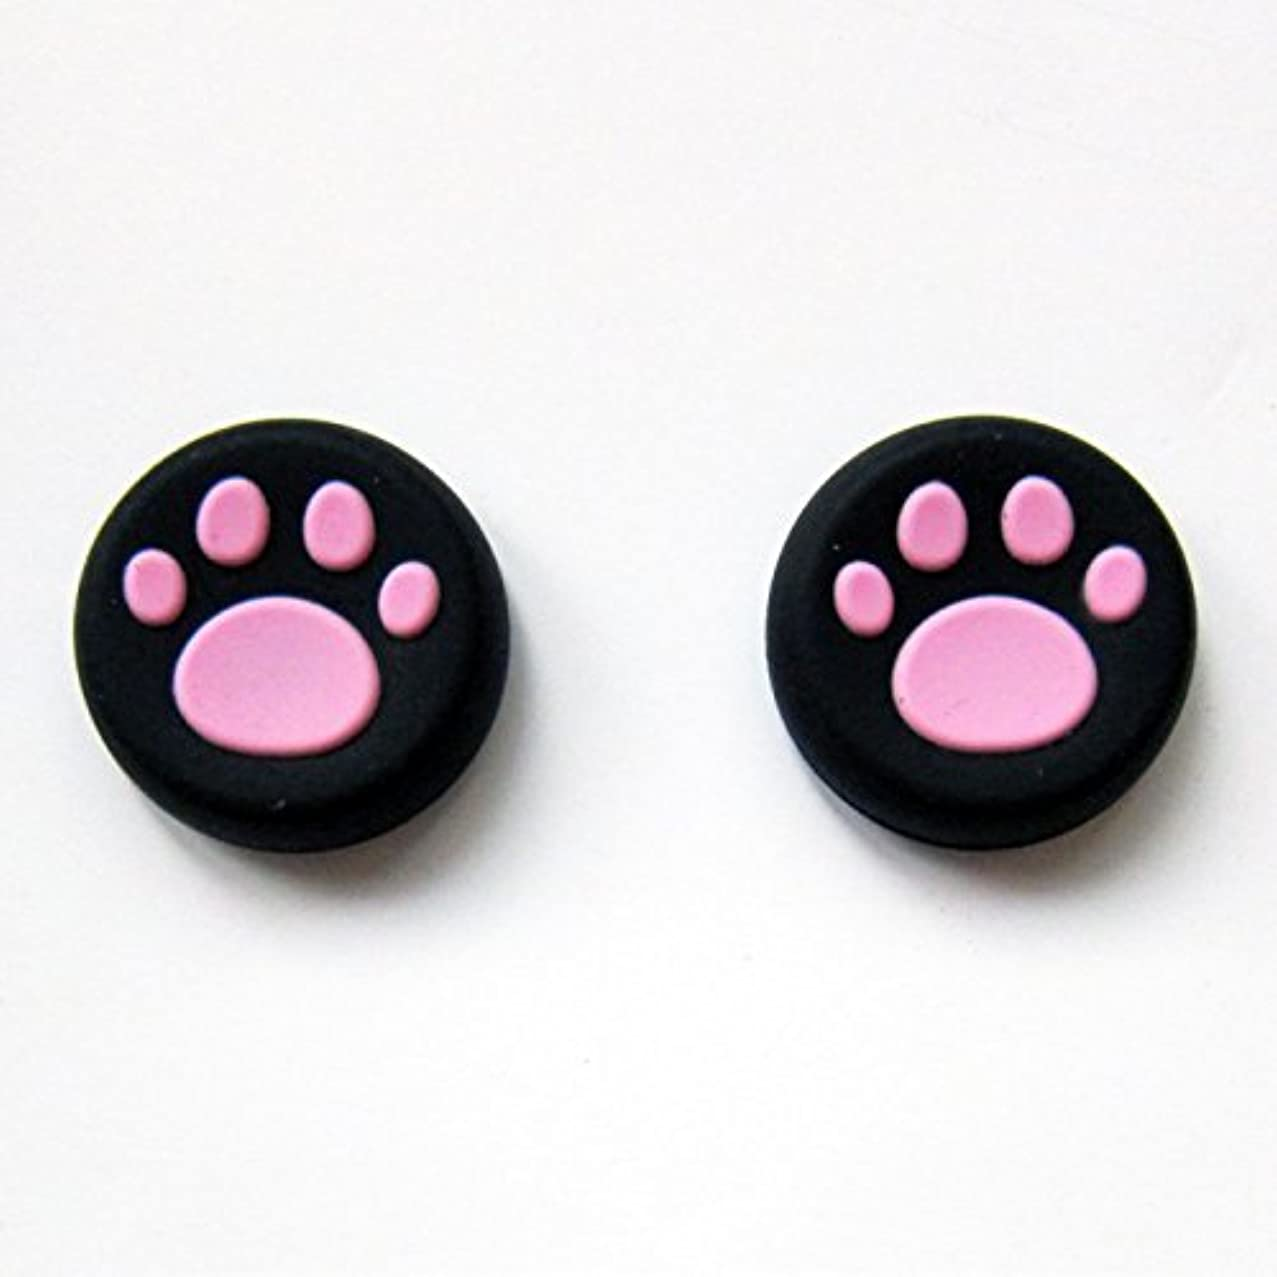 Vivi Audio? Thumb Stick Grips Cap Cover Joystick Thumbsticks Caps For PS4 XBOX ONE XBOX 360 PS3 PS2 Pink Cat Dog Paw